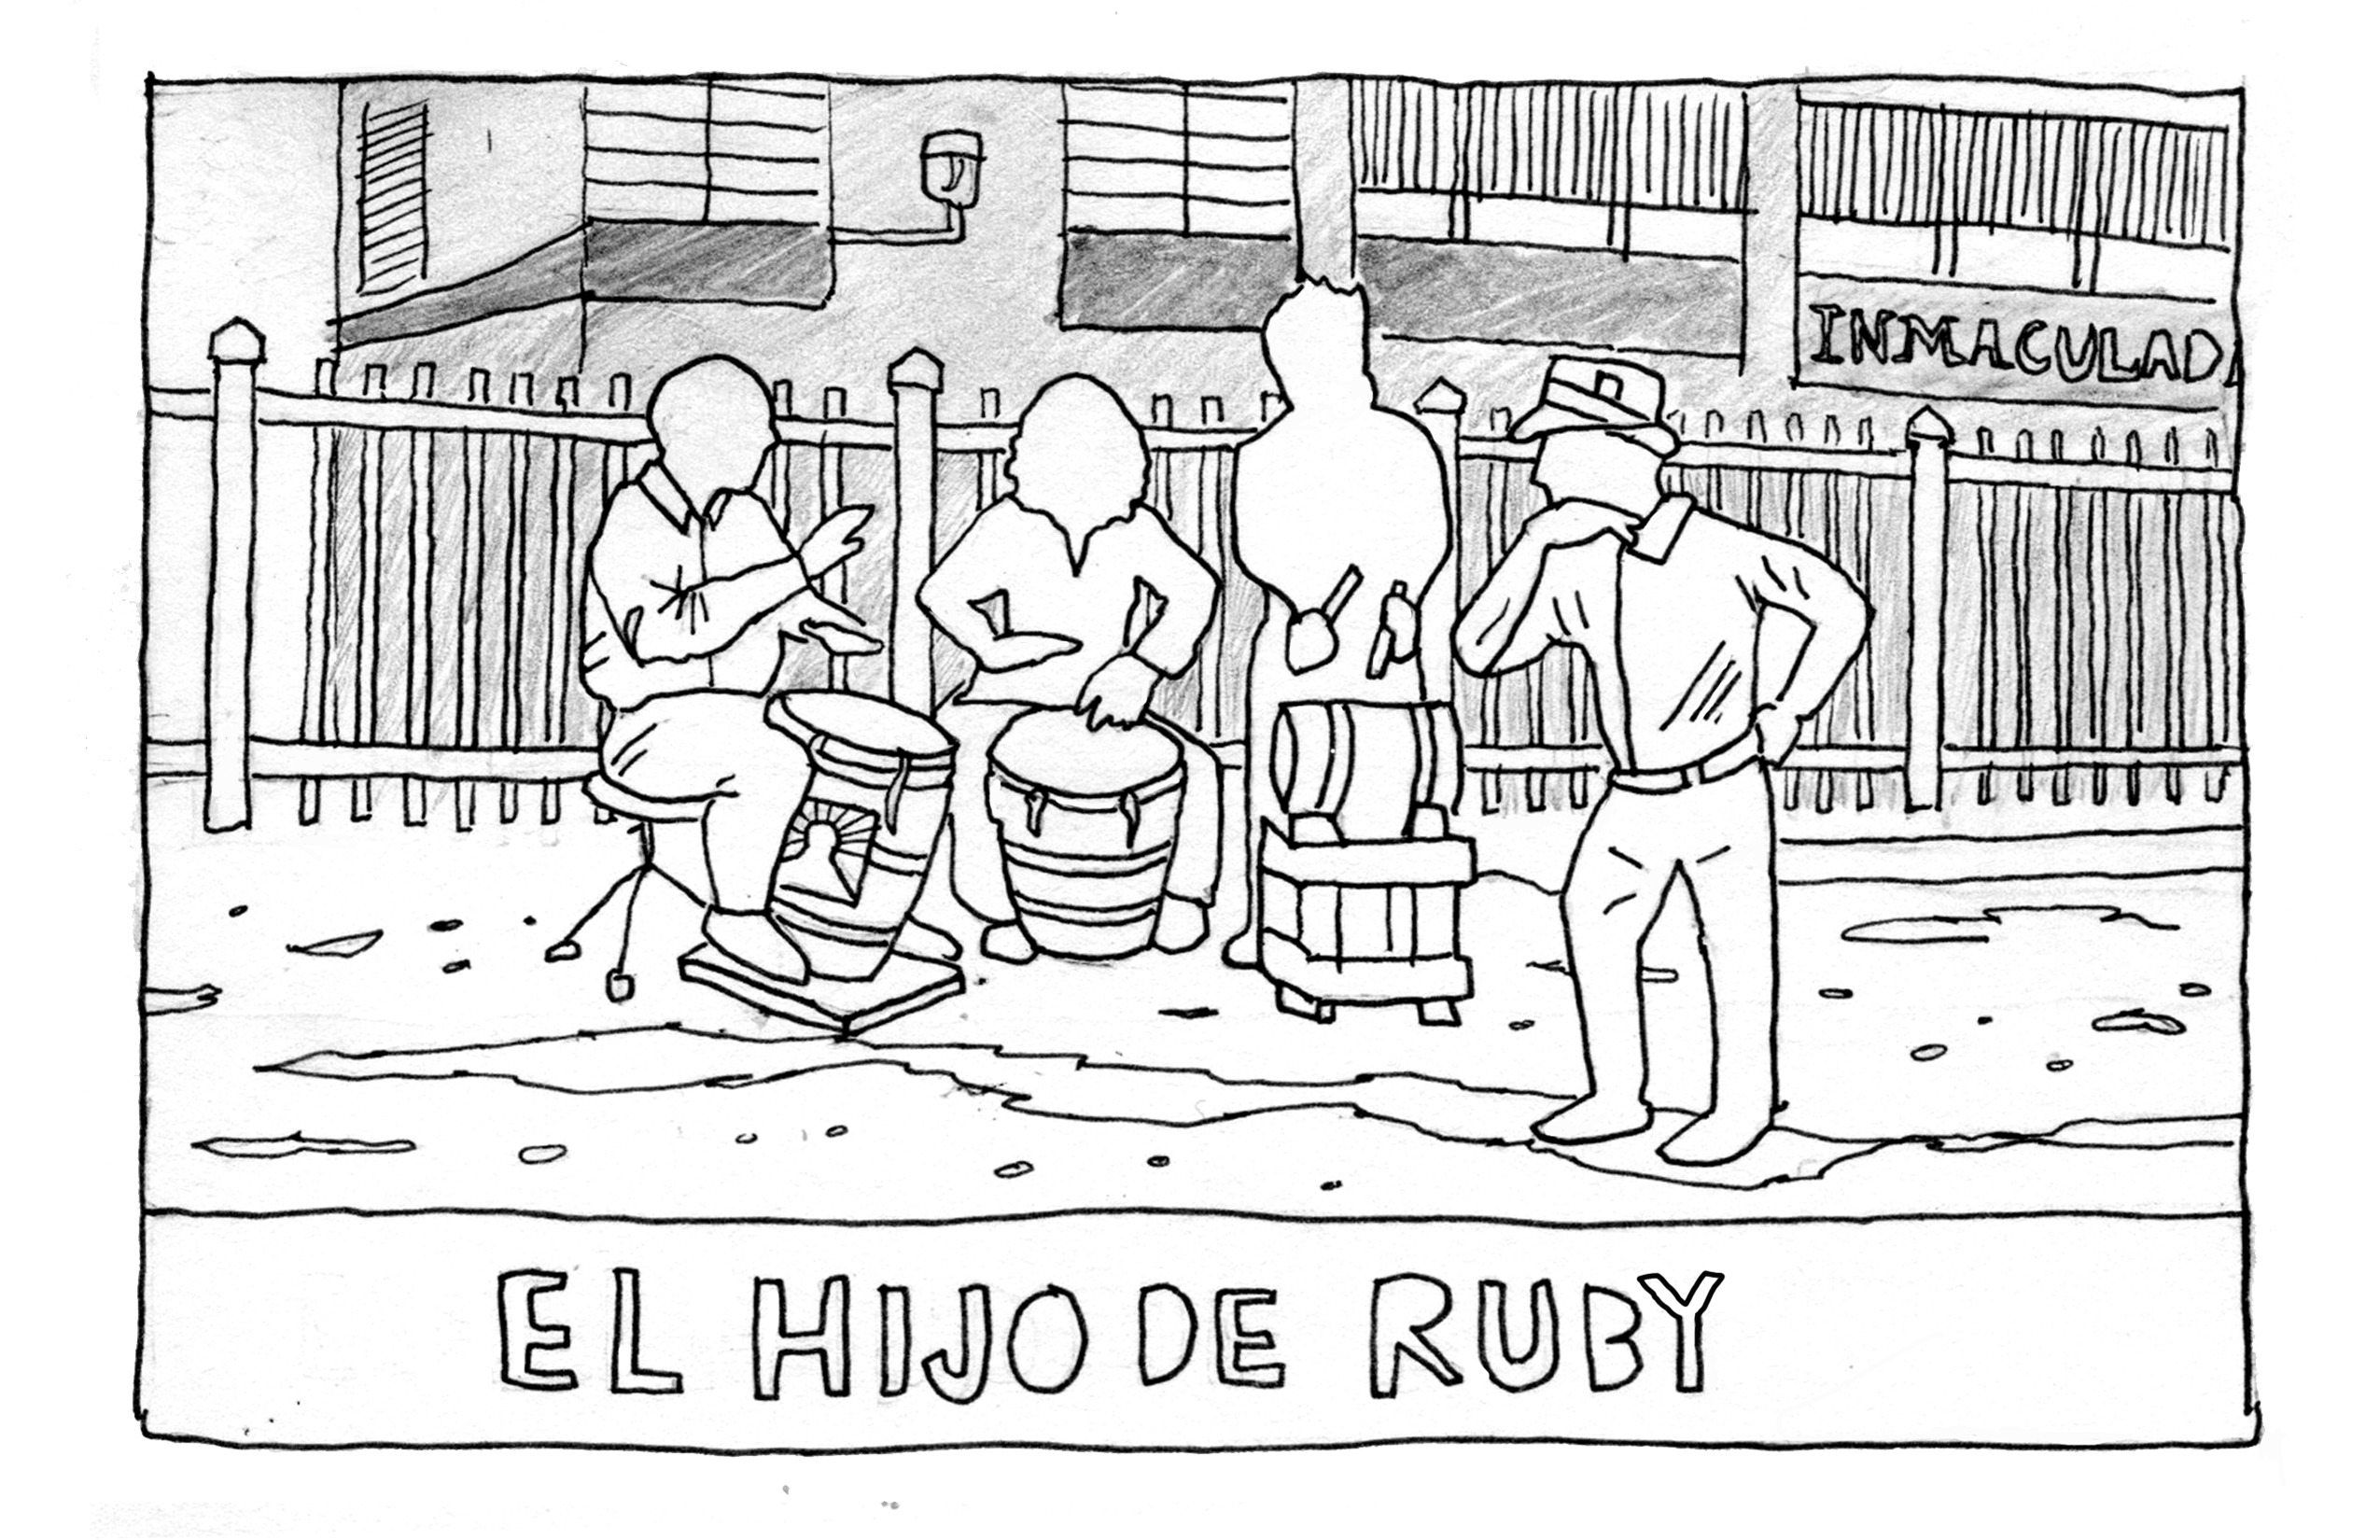 Drawing of a group of drummers